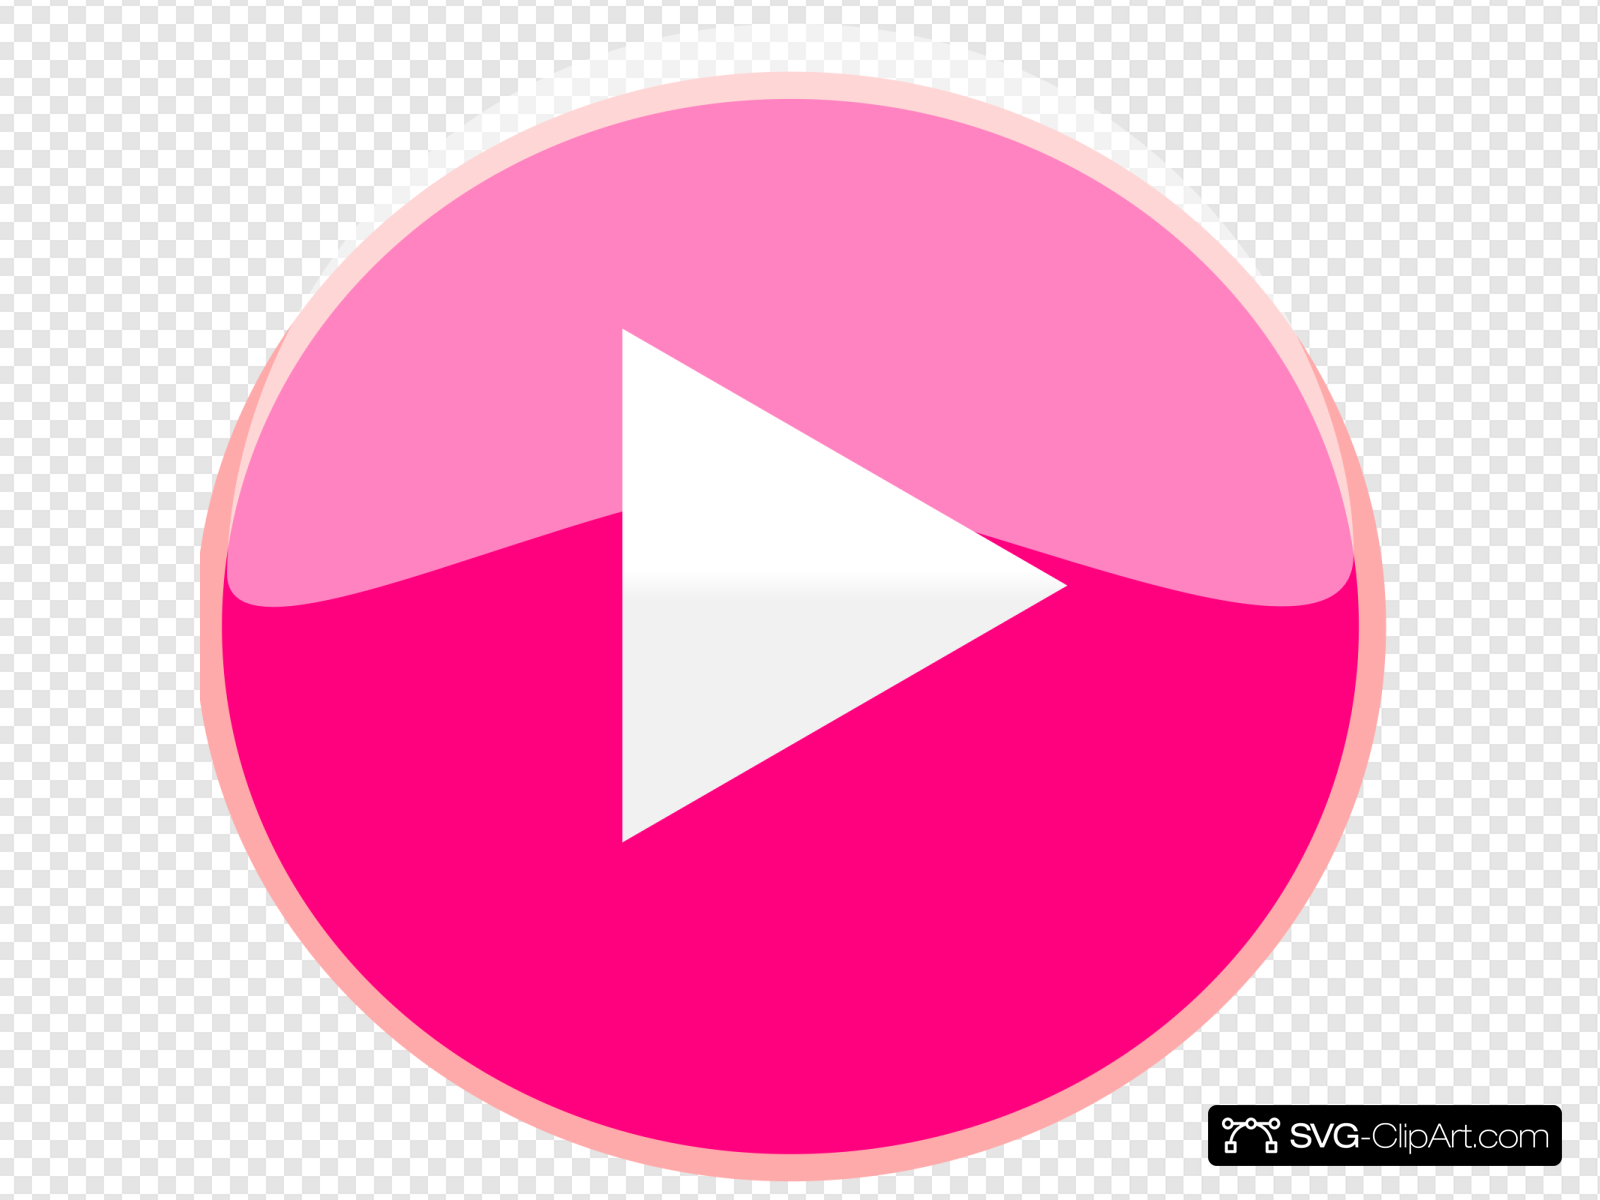 Pink Play Icon Clip art, Icon and SVG.